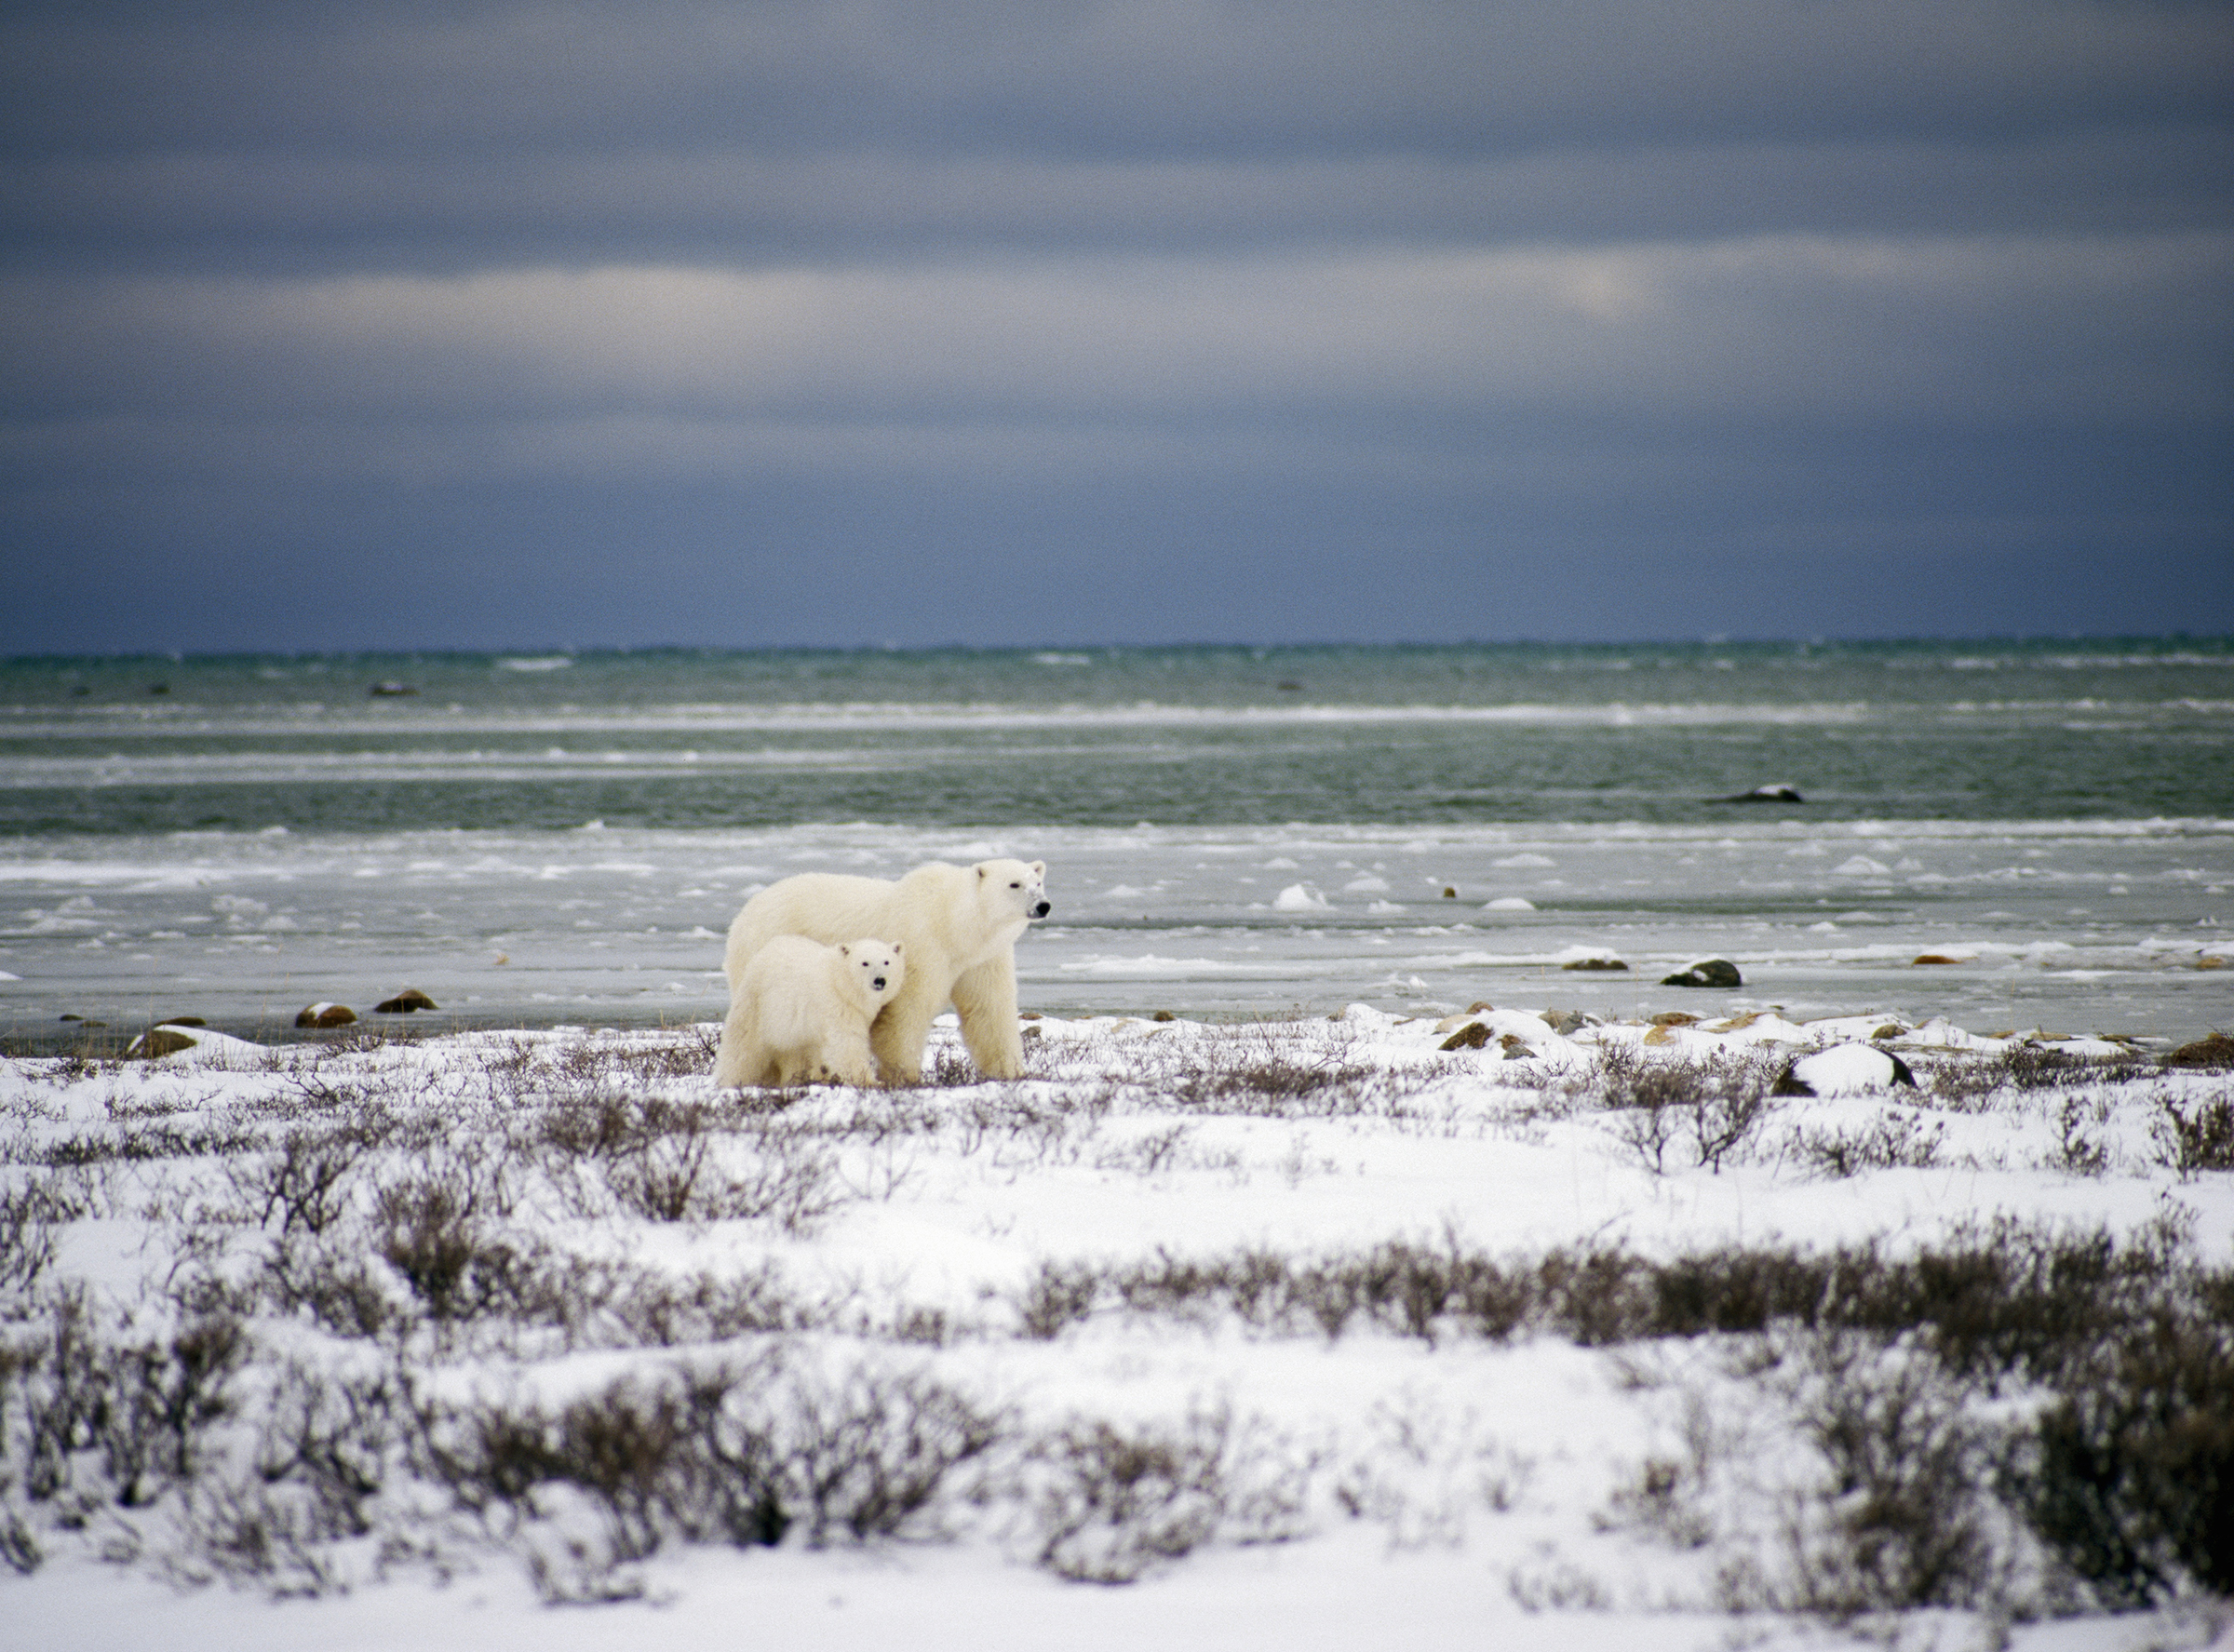 Polar bear spotting Canada adventure travel safety first